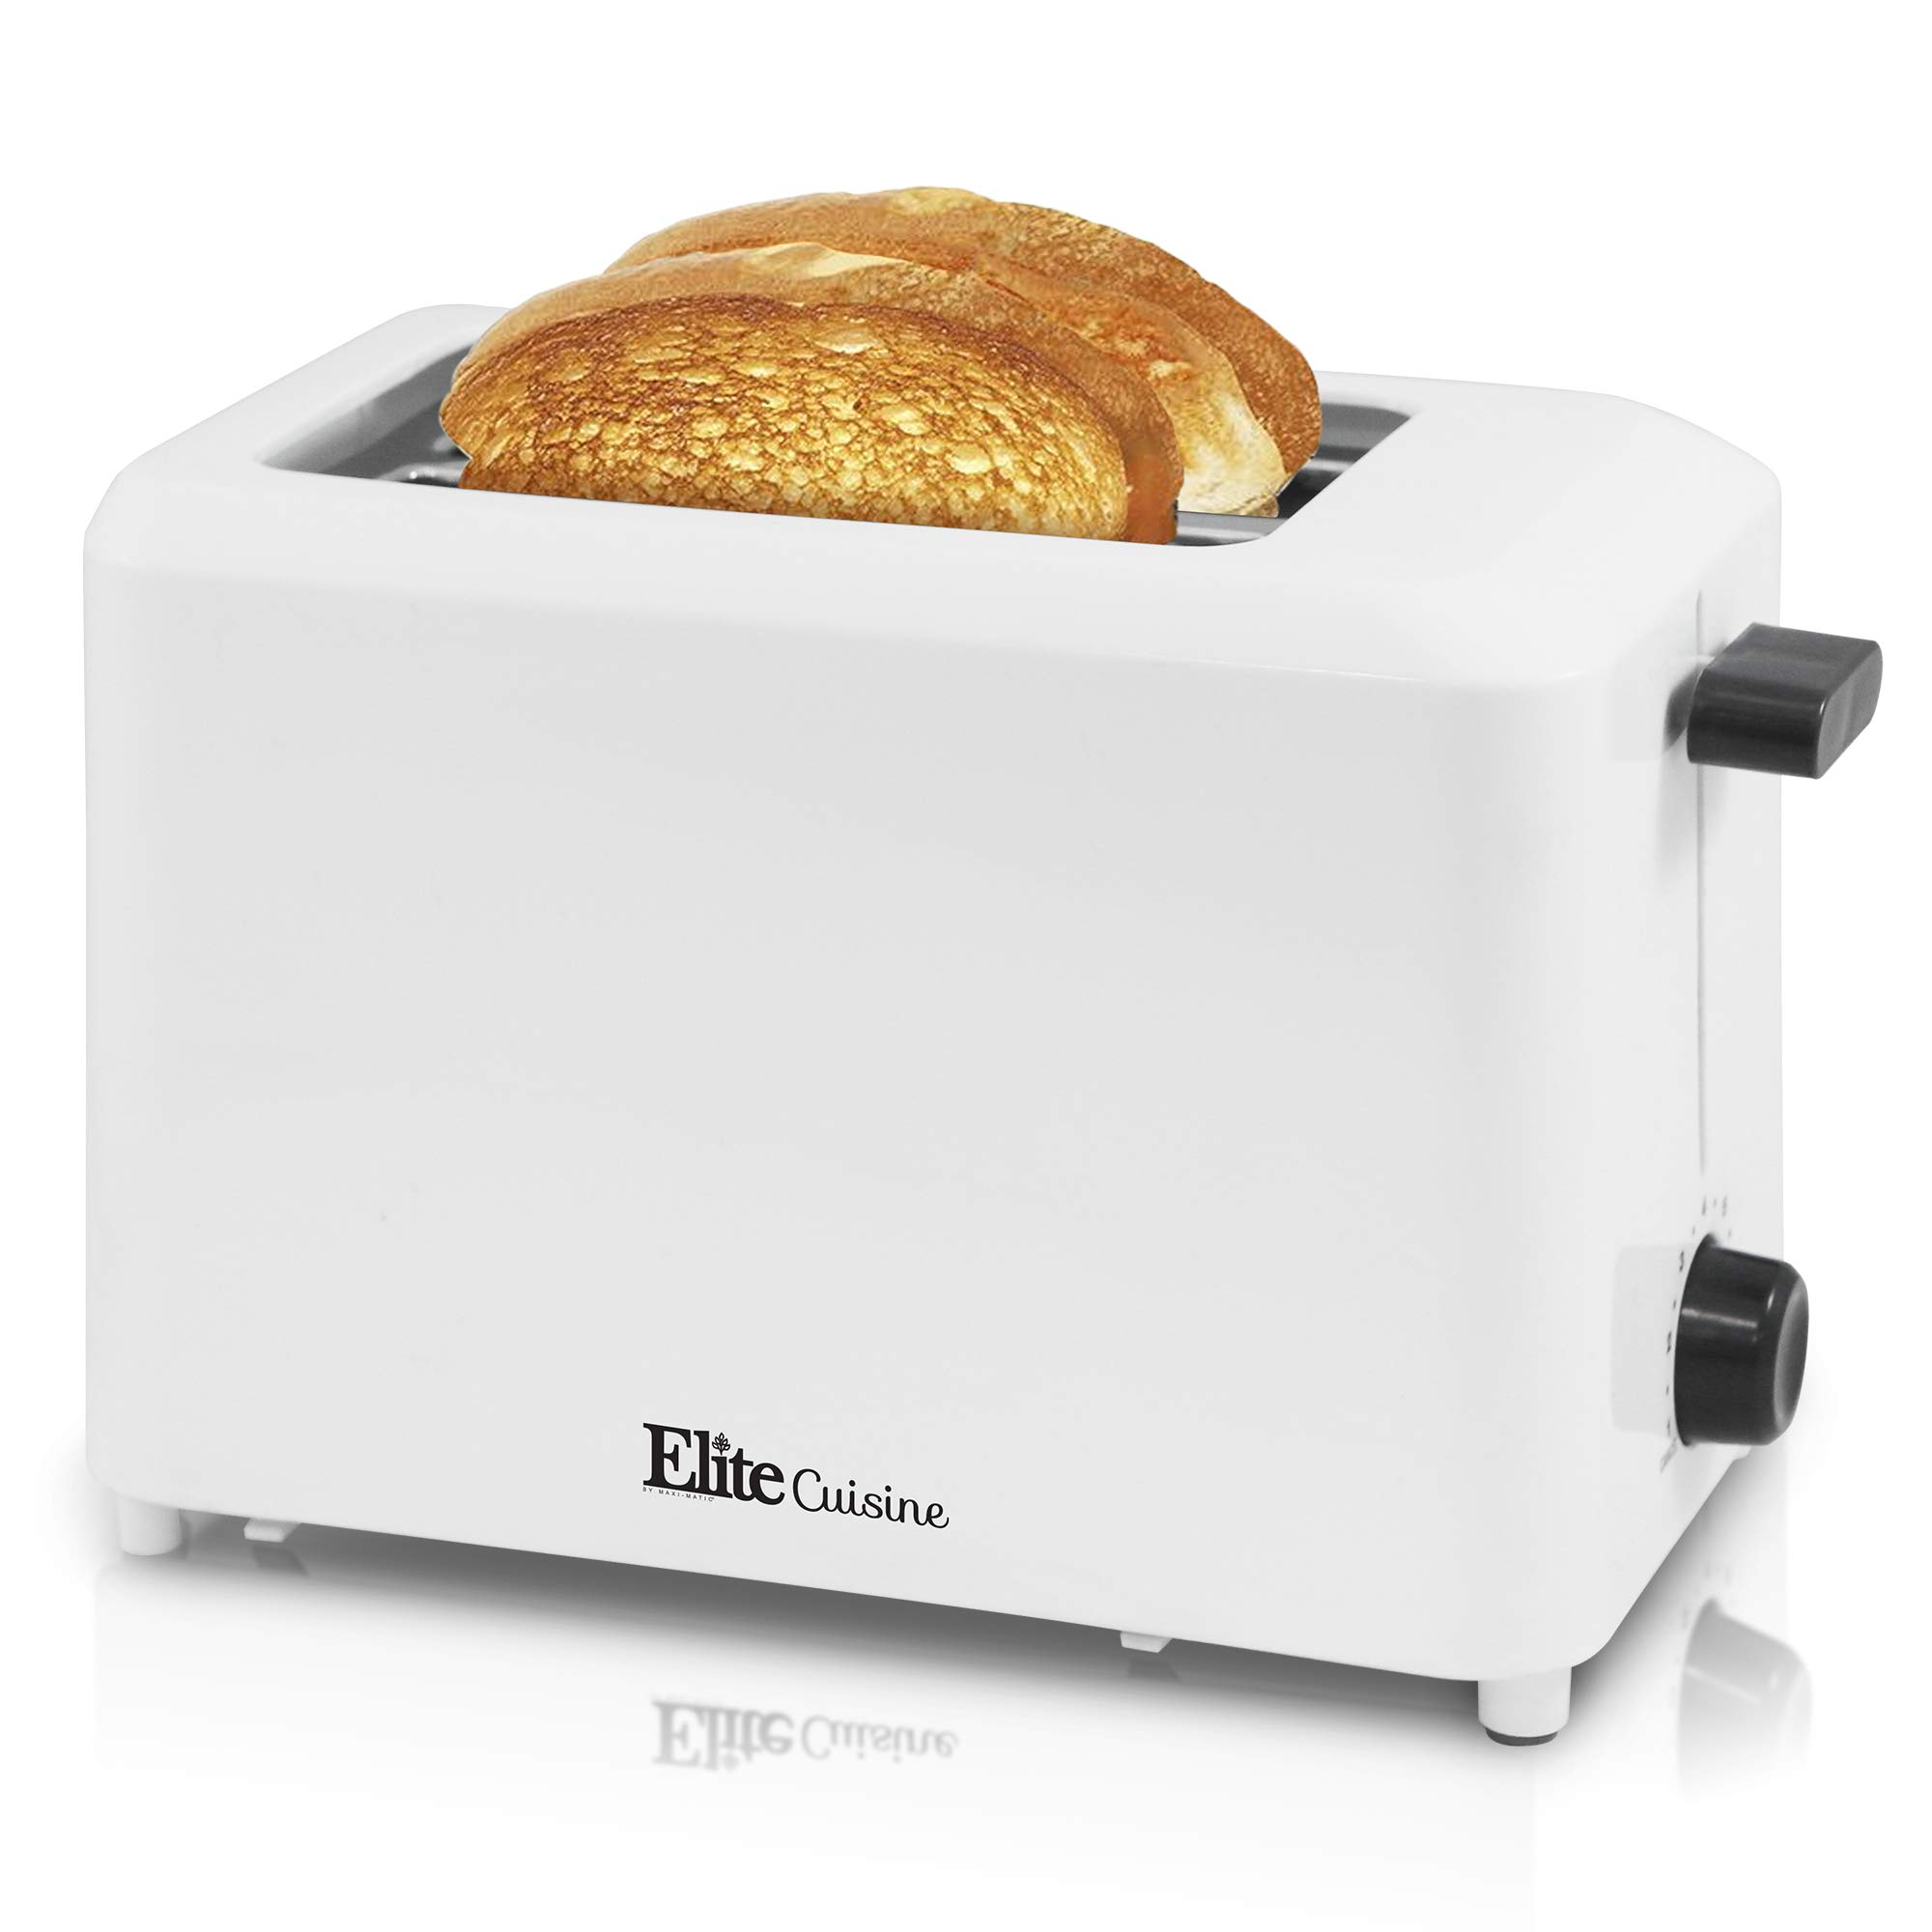 Elite Cuisine ECT-1027 Cool Touch Toaster with Extra Wide 1.25'' Slots for Bagels and Specialty Breads, 2 Slices, White by Elite Cuisine (Image #1)